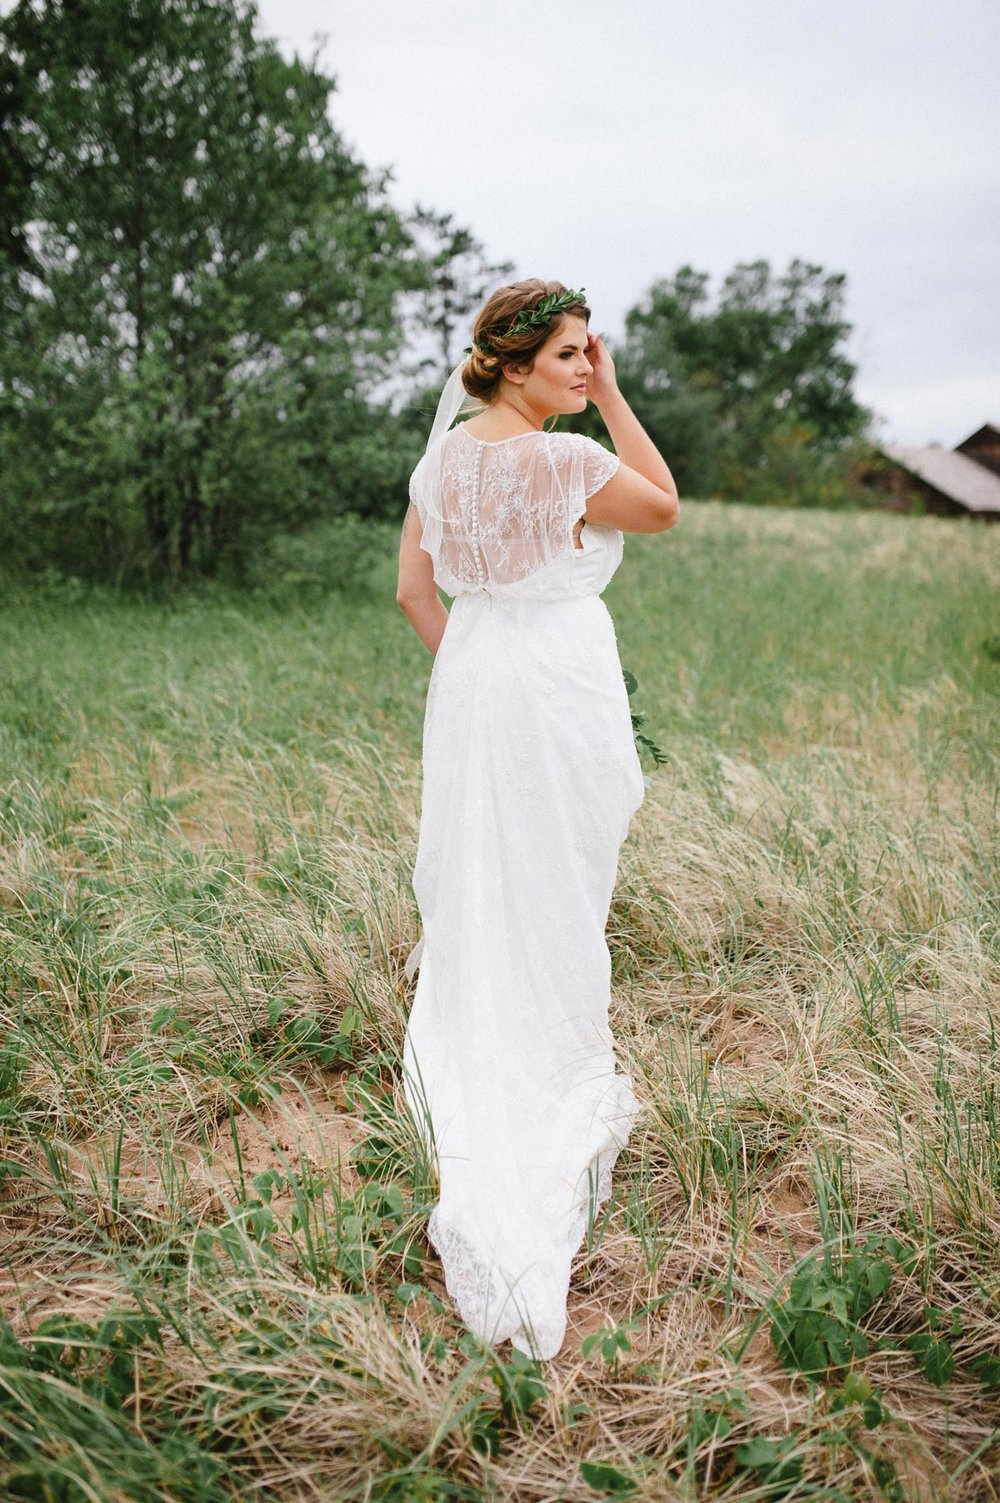 33-simple wedding dress perth.jpg